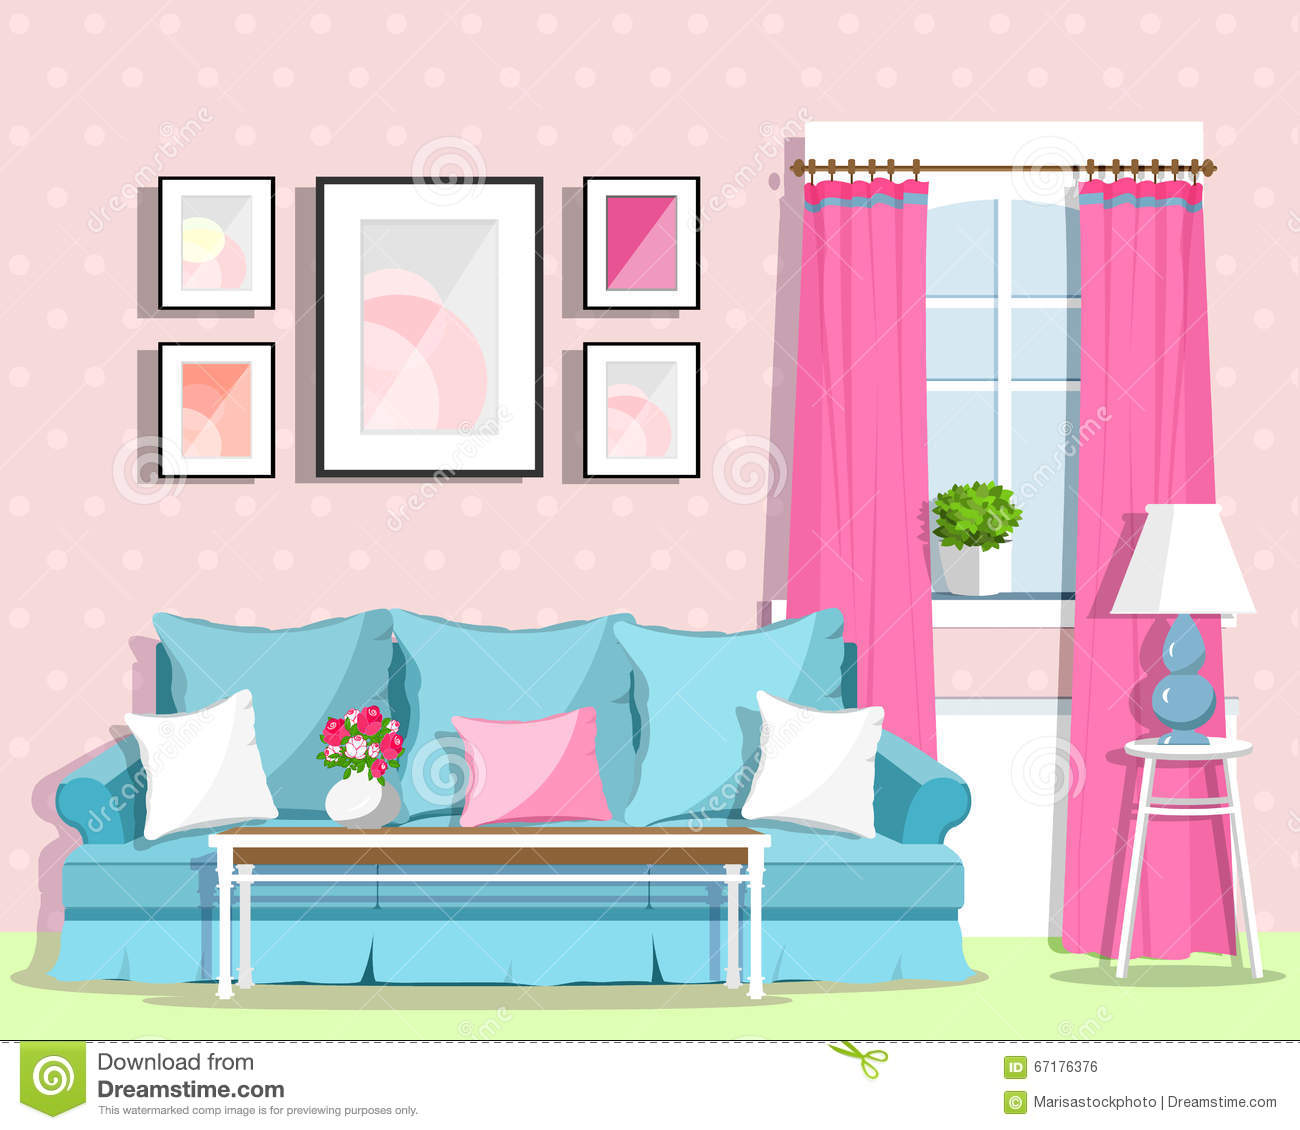 Cute colorful living room interior design with furniture for Colorful living room furniture